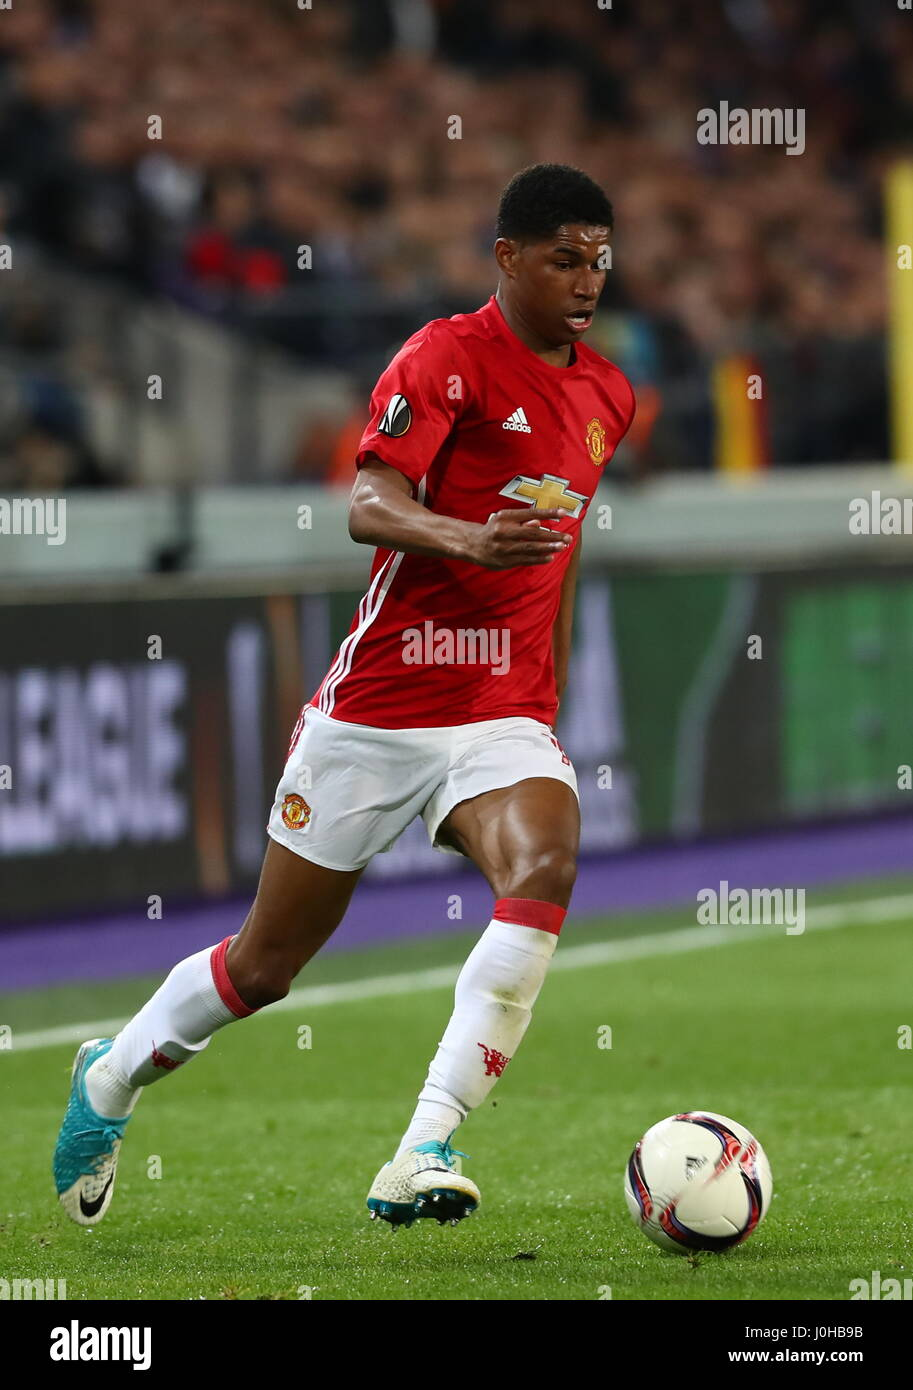 Rashford High Resolution Stock Photography And Images Alamy